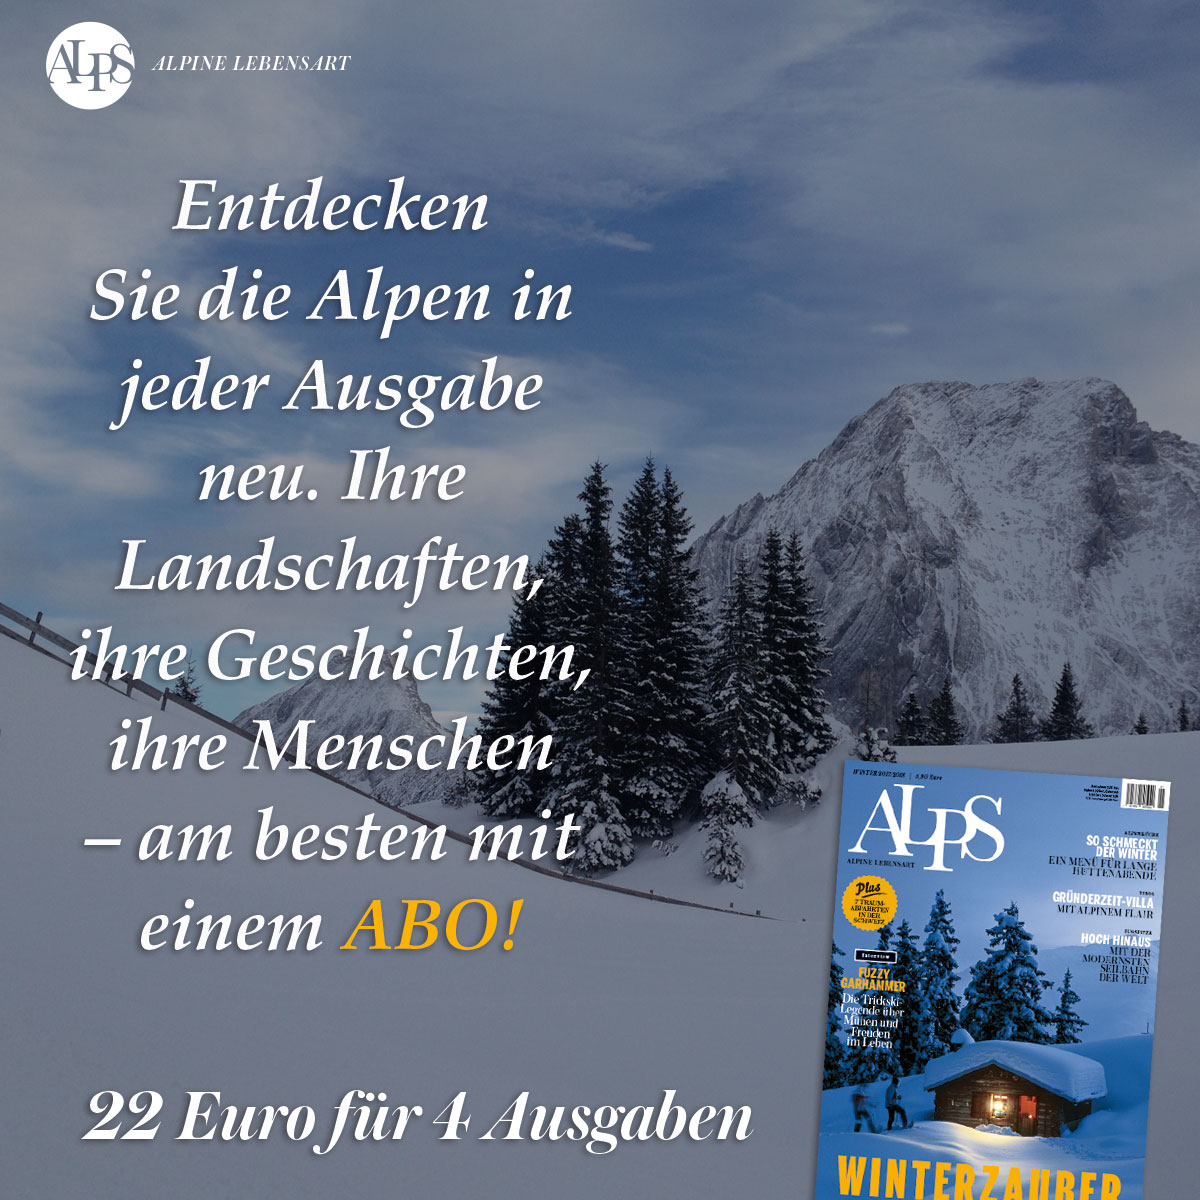 ALPS Abo Winter 2017